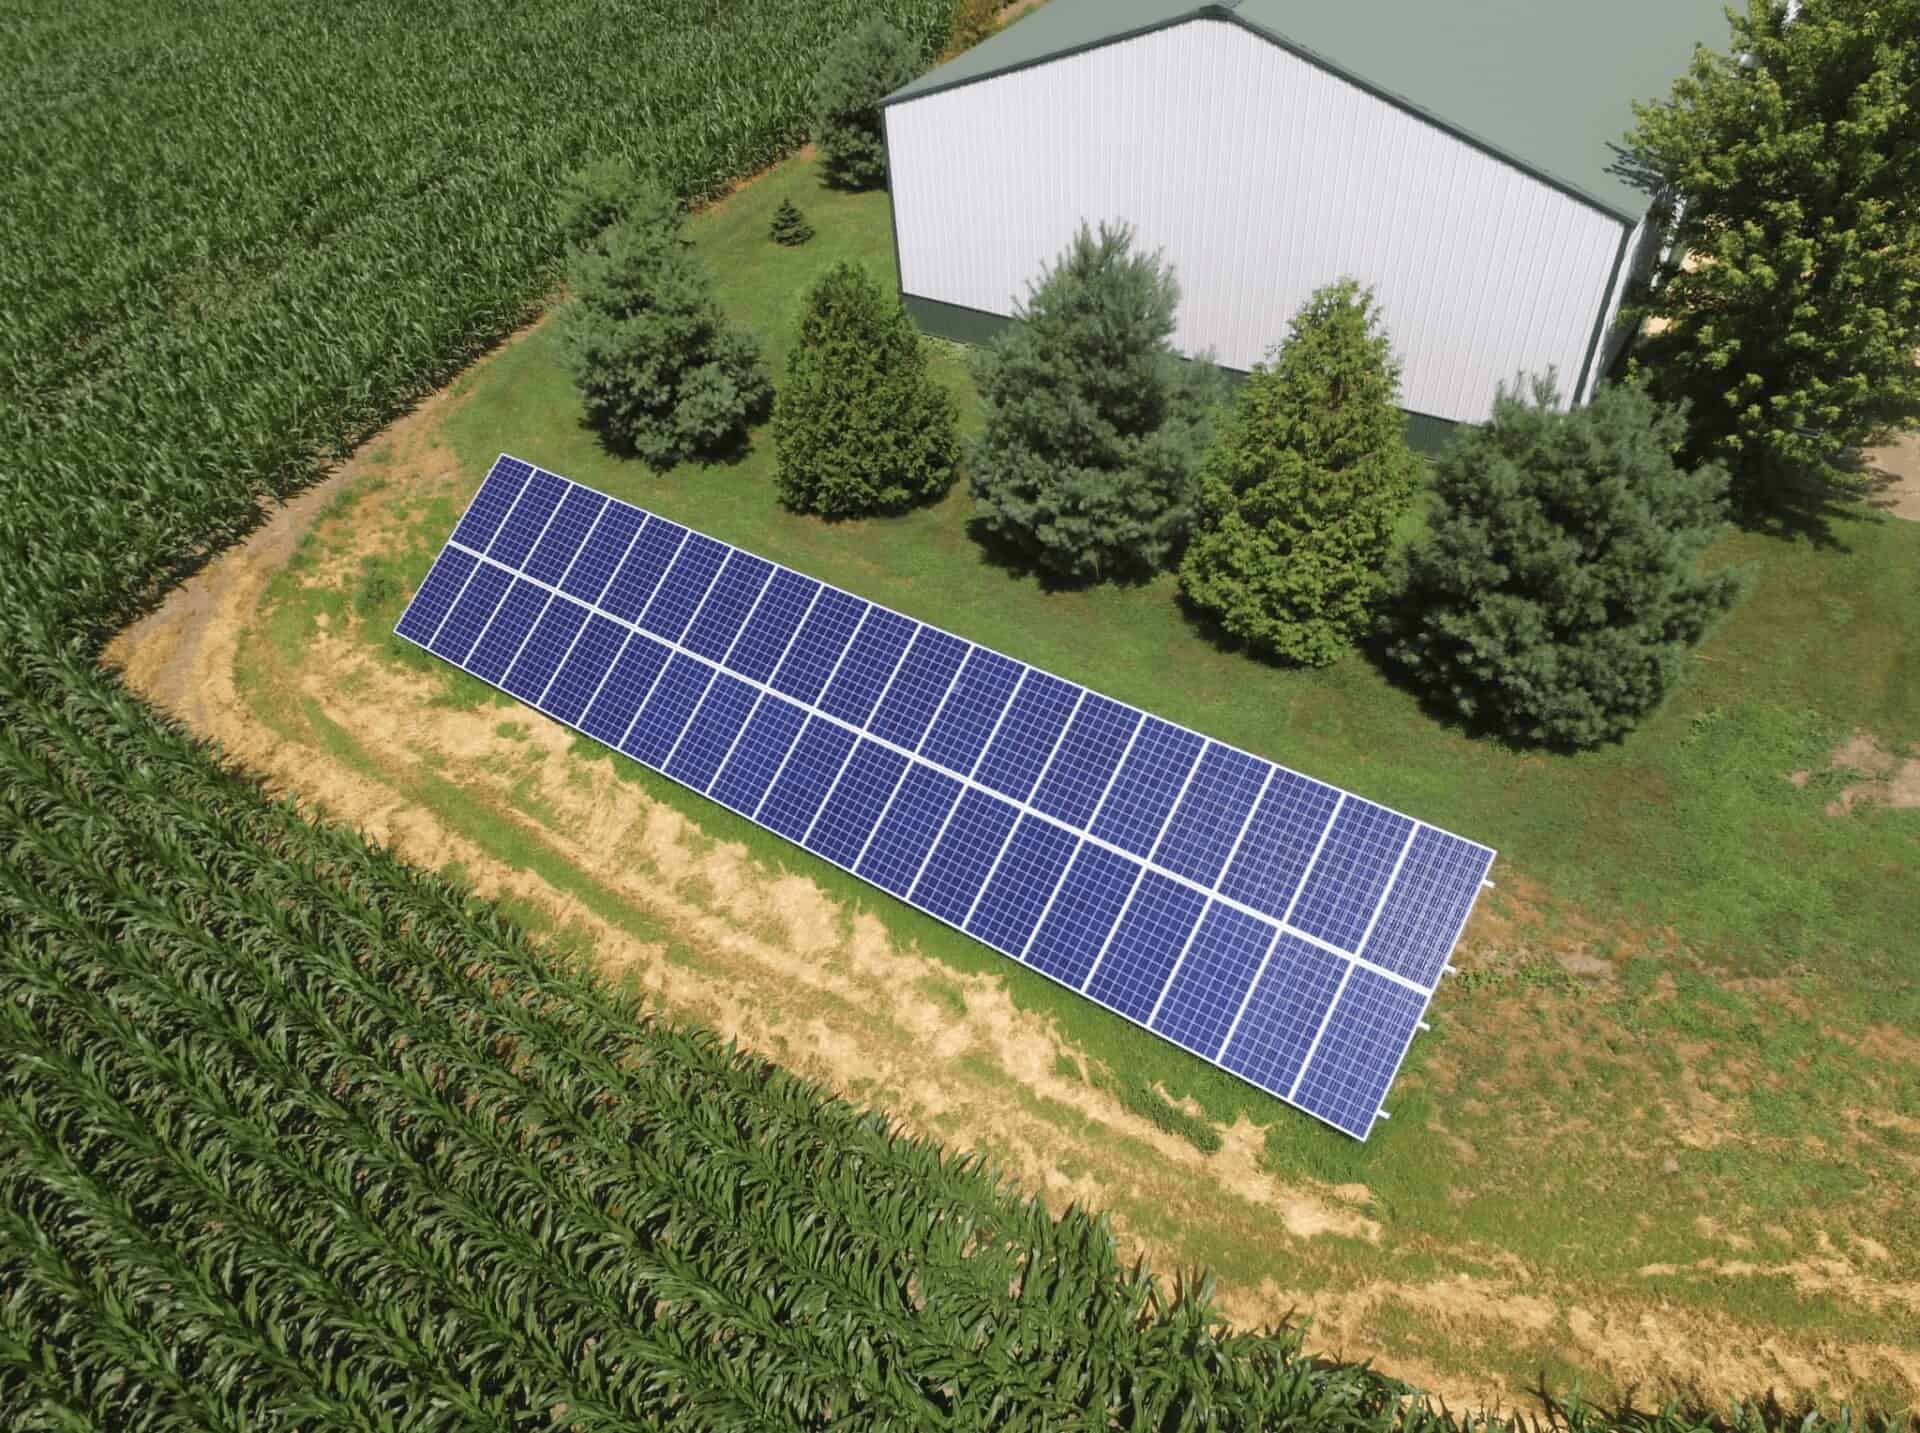 ground mount solar panel system next to corn field and pole building